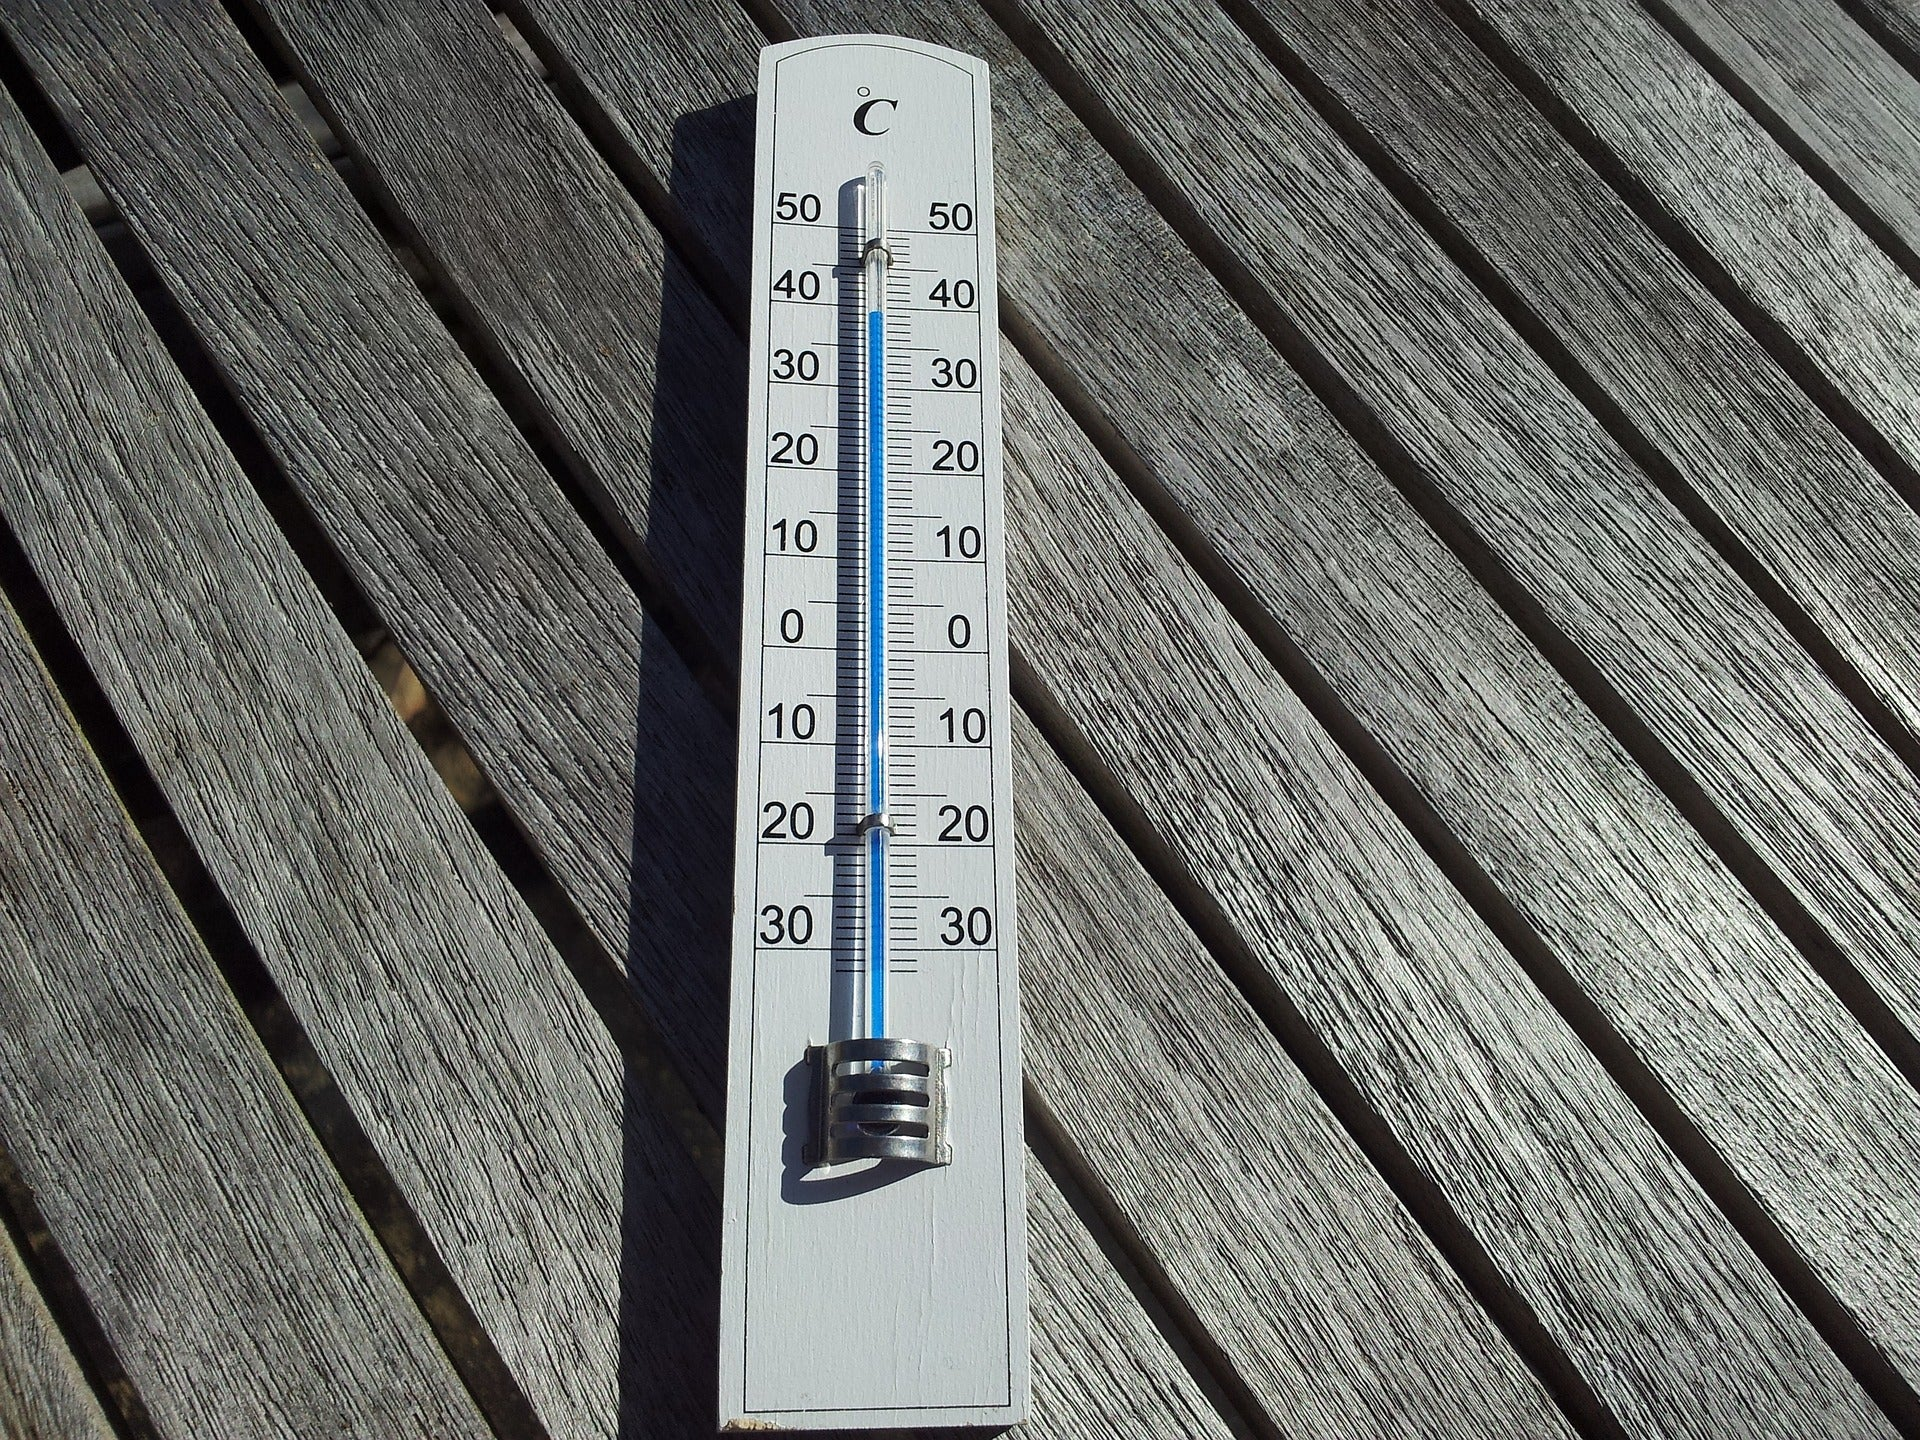 What Everyone needs to know about Body Temperature and Overheating